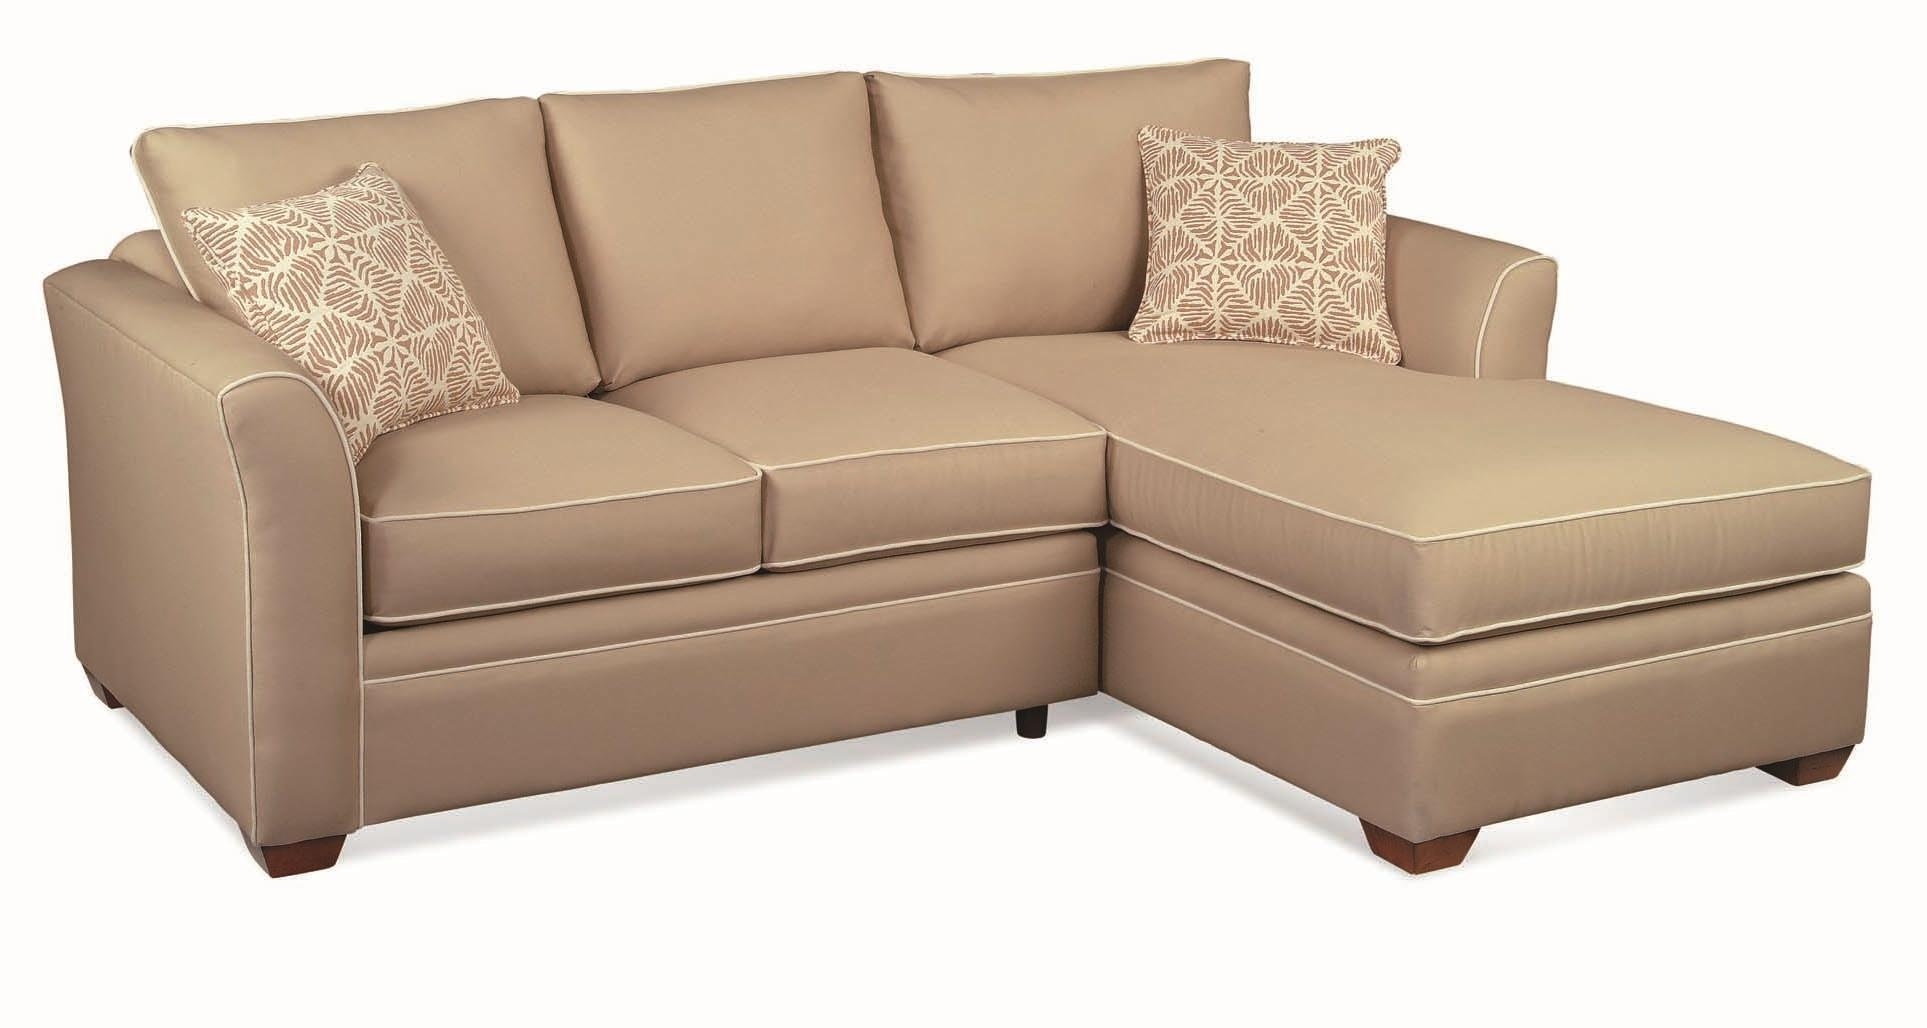 Braxton Culler Bridgeport Casual 2 Piece Sectional Sofa With With Regard To Braxton Culler Sofas (View 19 of 20)